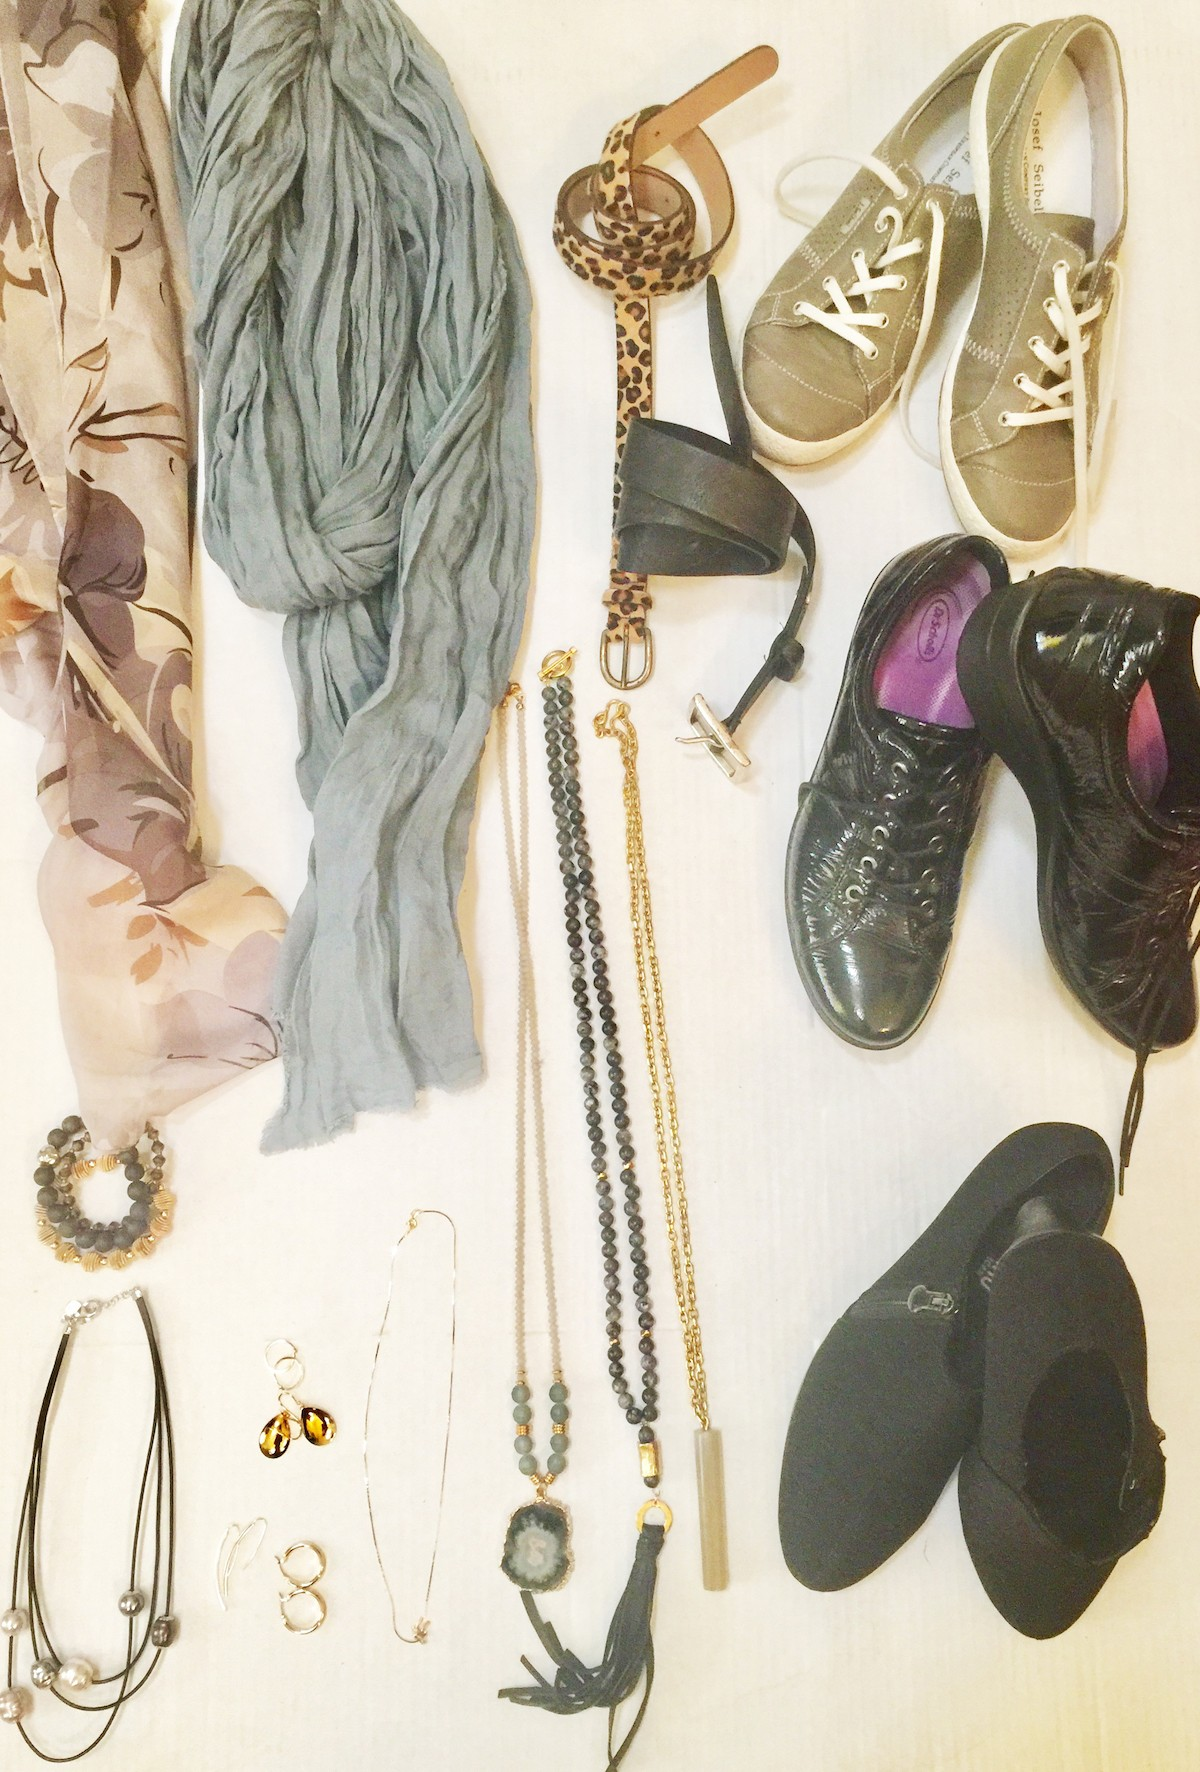 bd51d4aac32d3 Let's talk specifics on accessories: think minimalistic. You don't need to  pack every scarf and necklace you own, but you do need to pack your  accessories ...